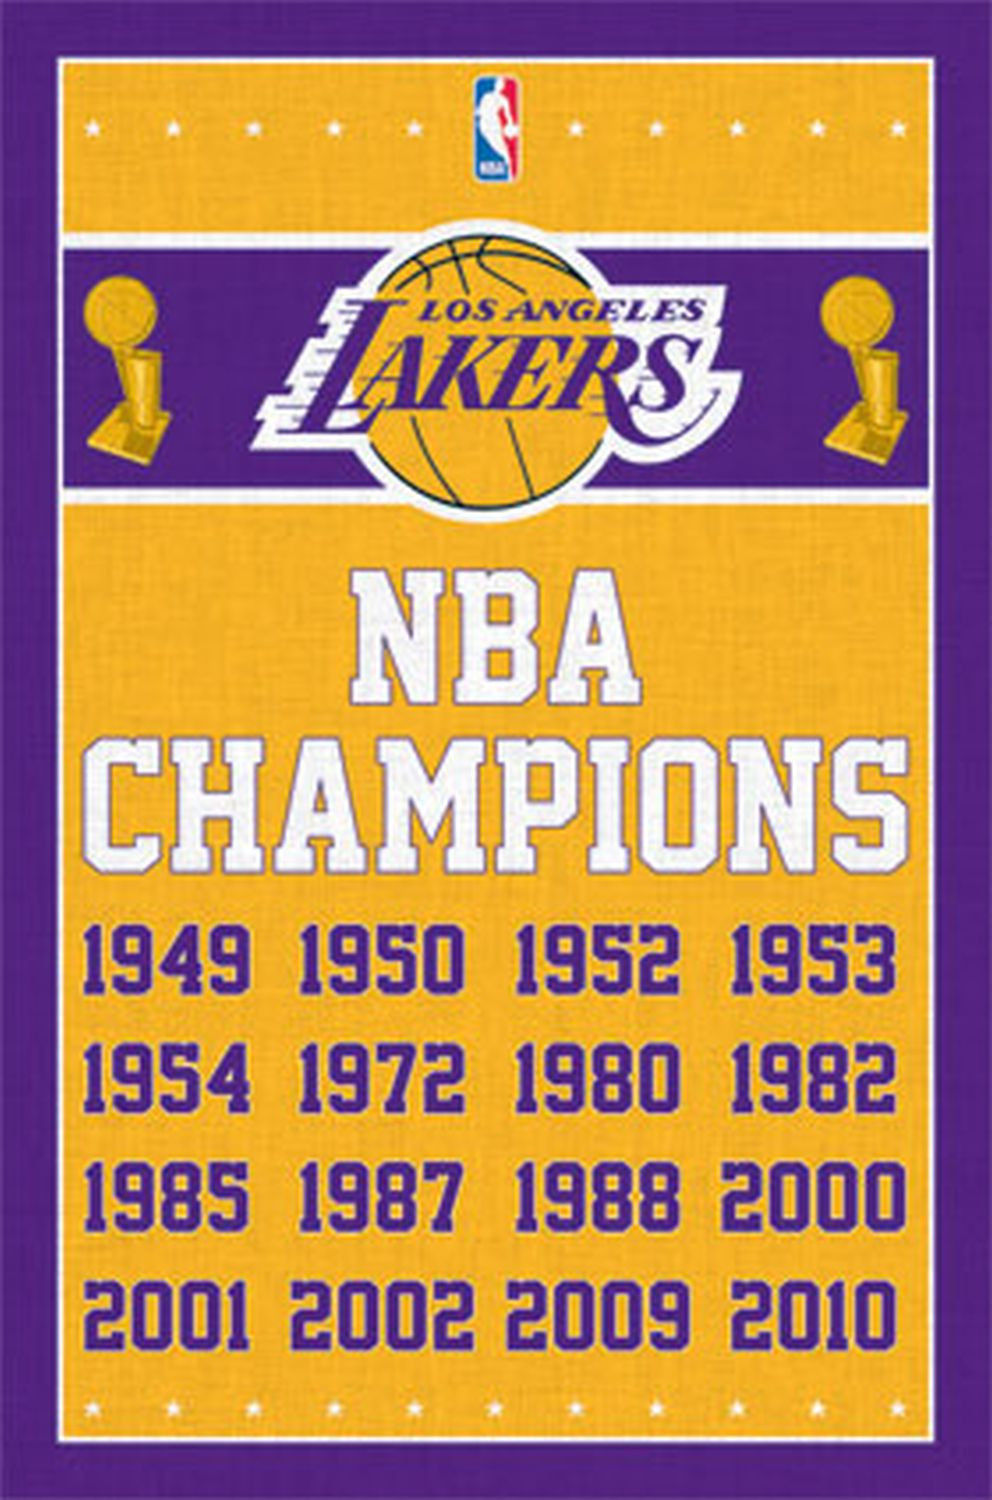 Los Angeles Lakers Nba Champions Poster 22 X 34 Basketball Logo 6725 Los Angeles Lakers Nba Champions Nba Los Angeles